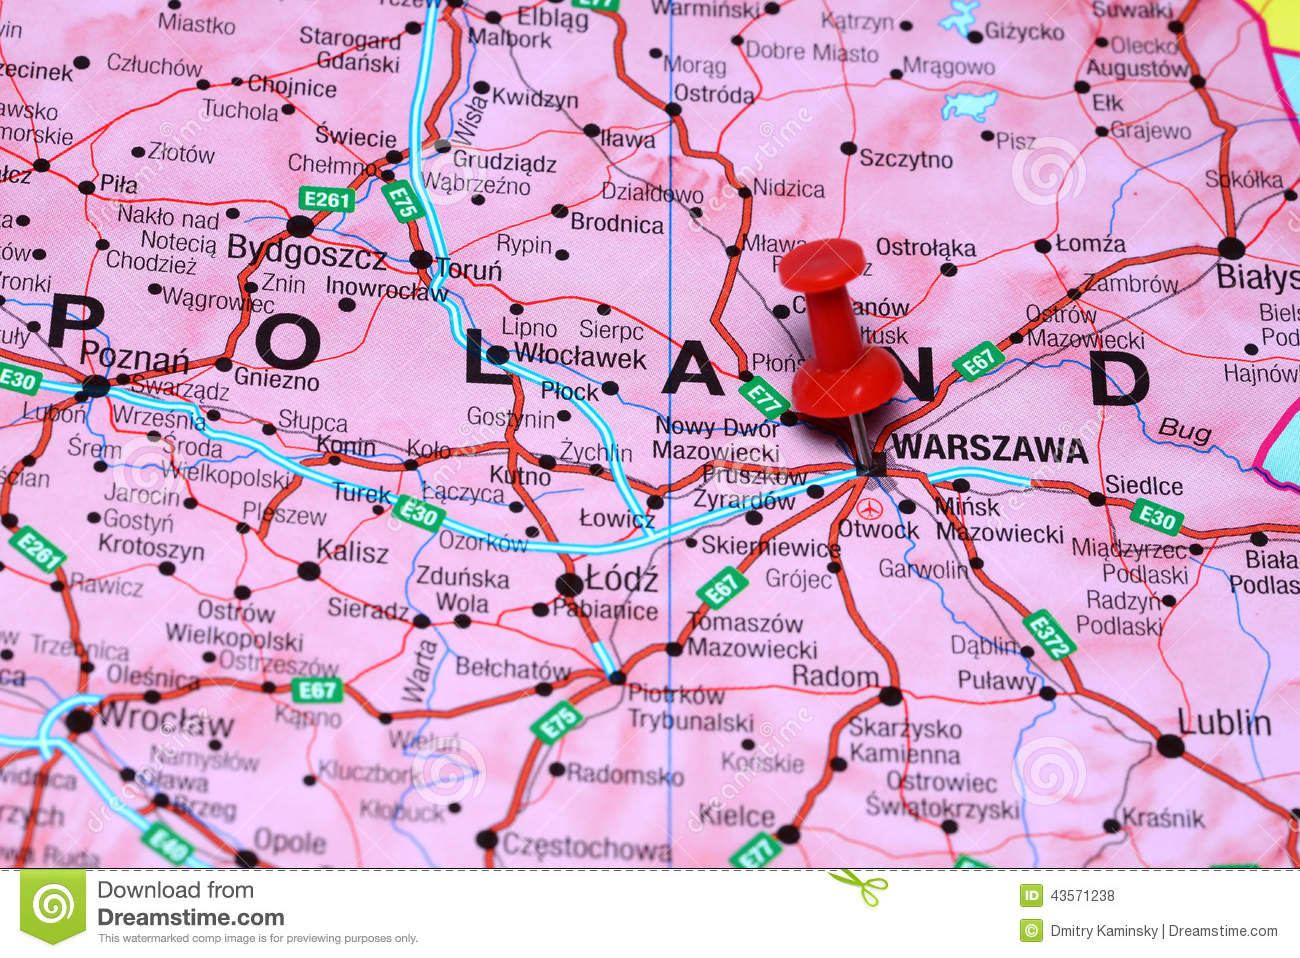 Warsaw Europe Map.Warsaw Pinned On A Map Of Europe Stock Photo Image Of Concept